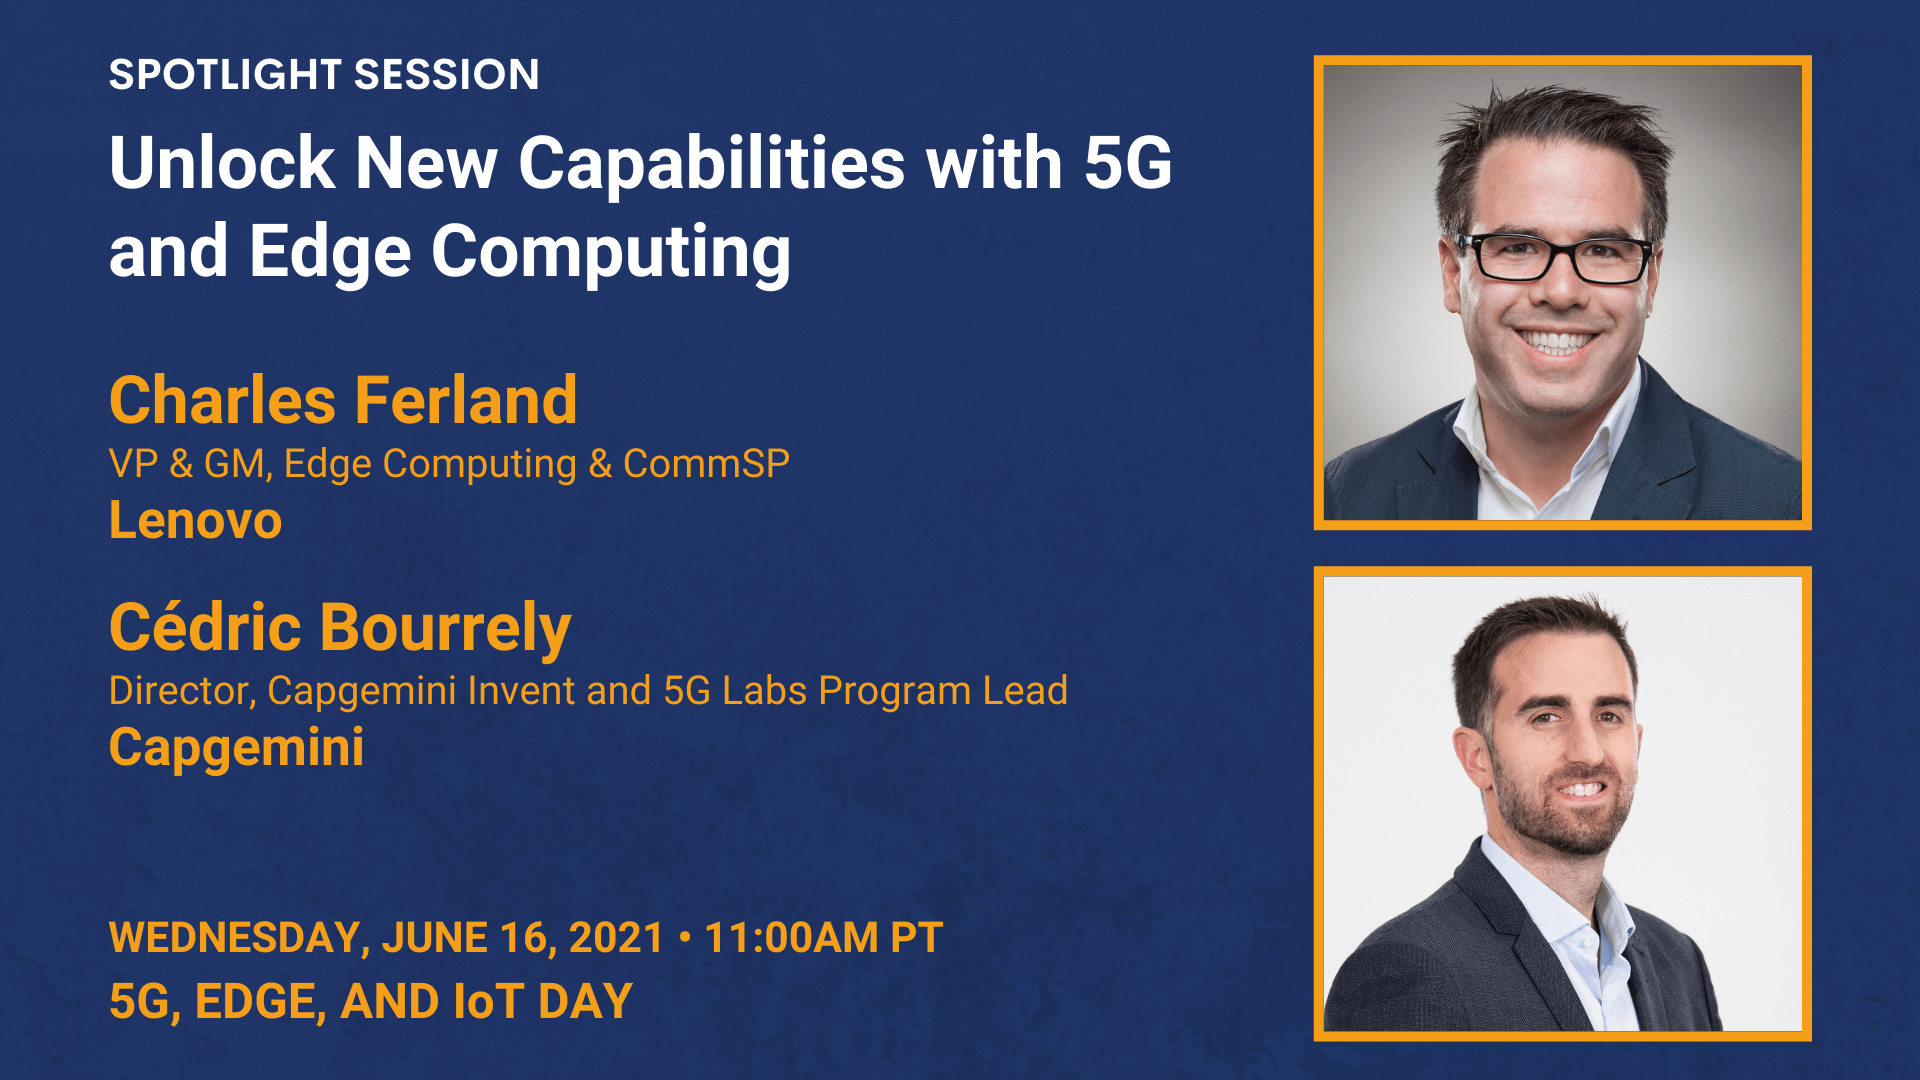 Unlock New Capabilities with 5G and Edge Computing (Charles Ferland and Cedric Bourrely)